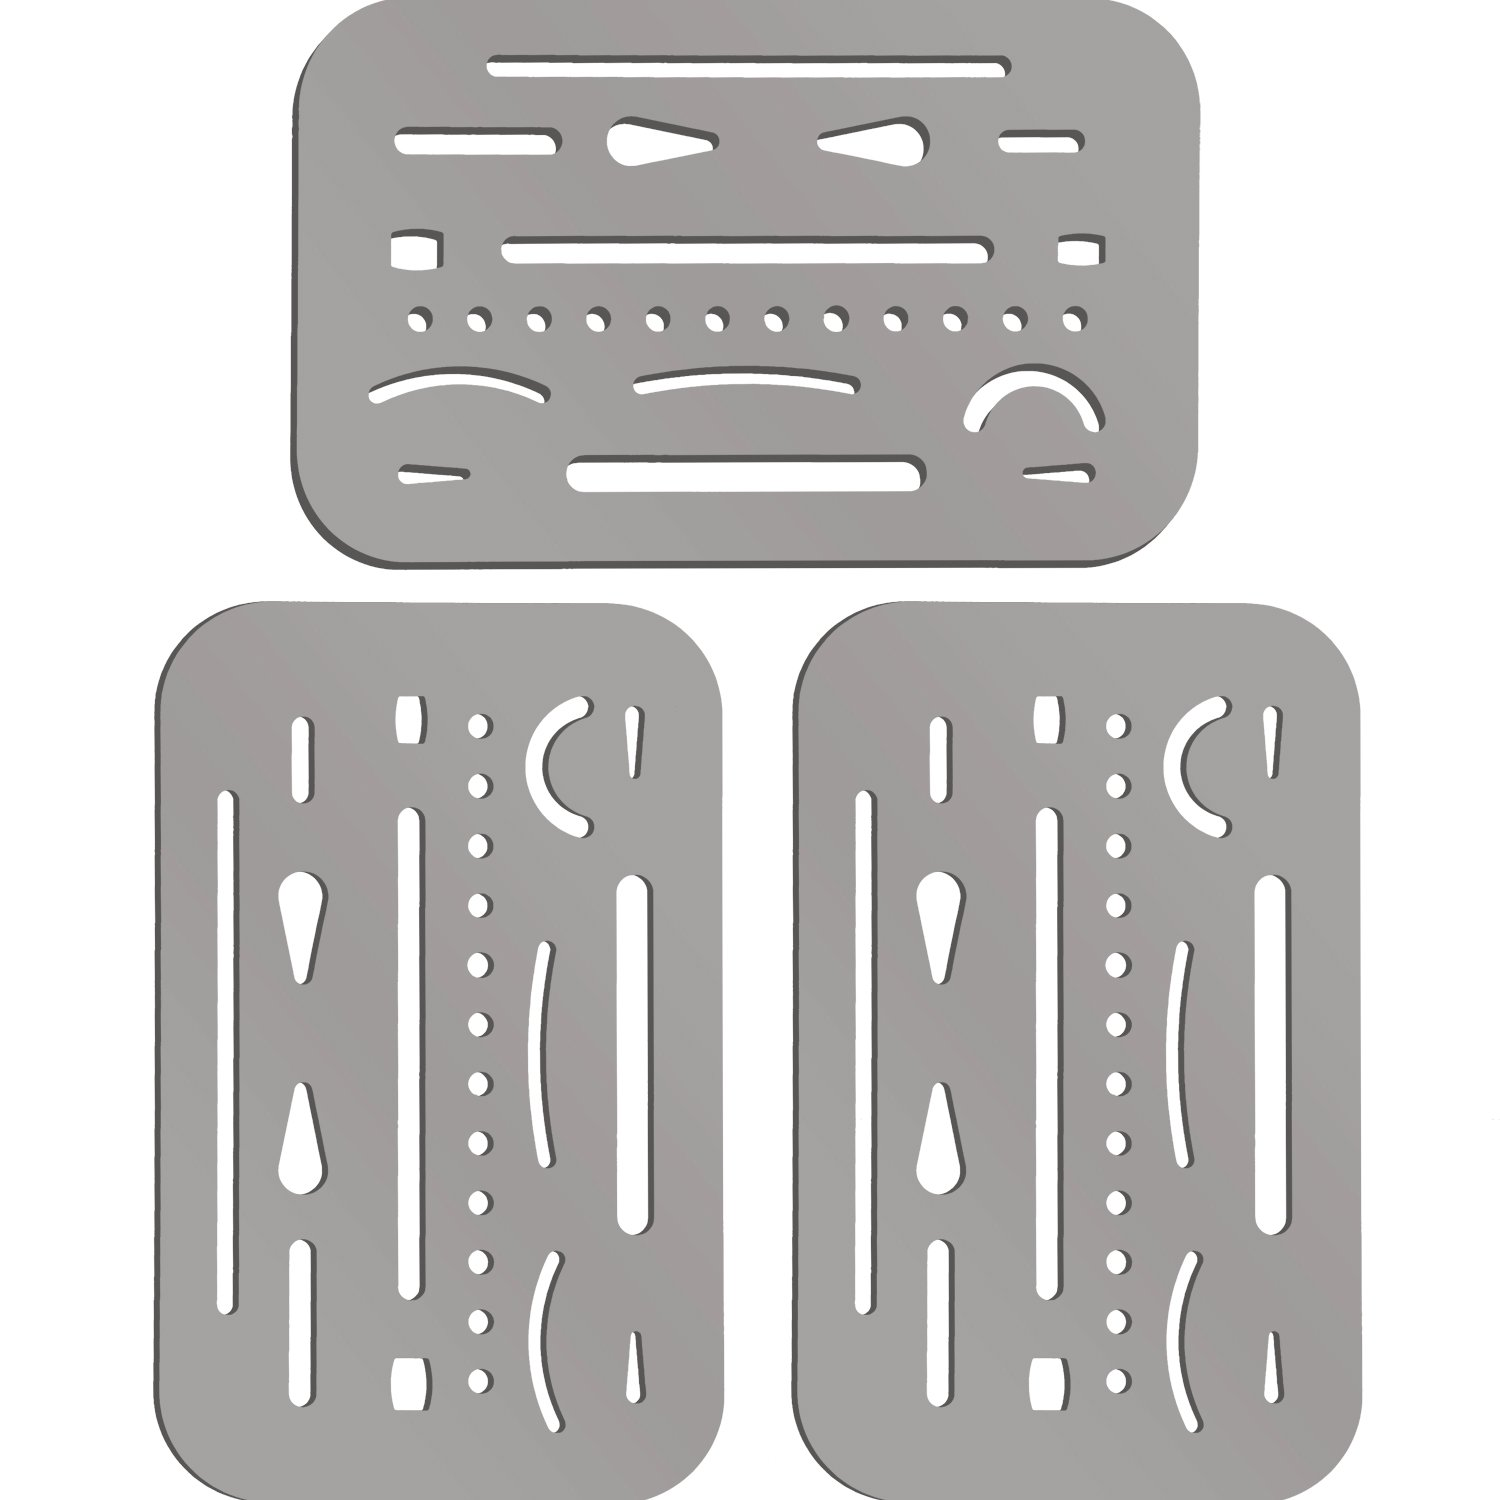 Hotop 3 Pieces Erasing Shield Stainless Steel Drawing Template Shield Drafting Tool Shield